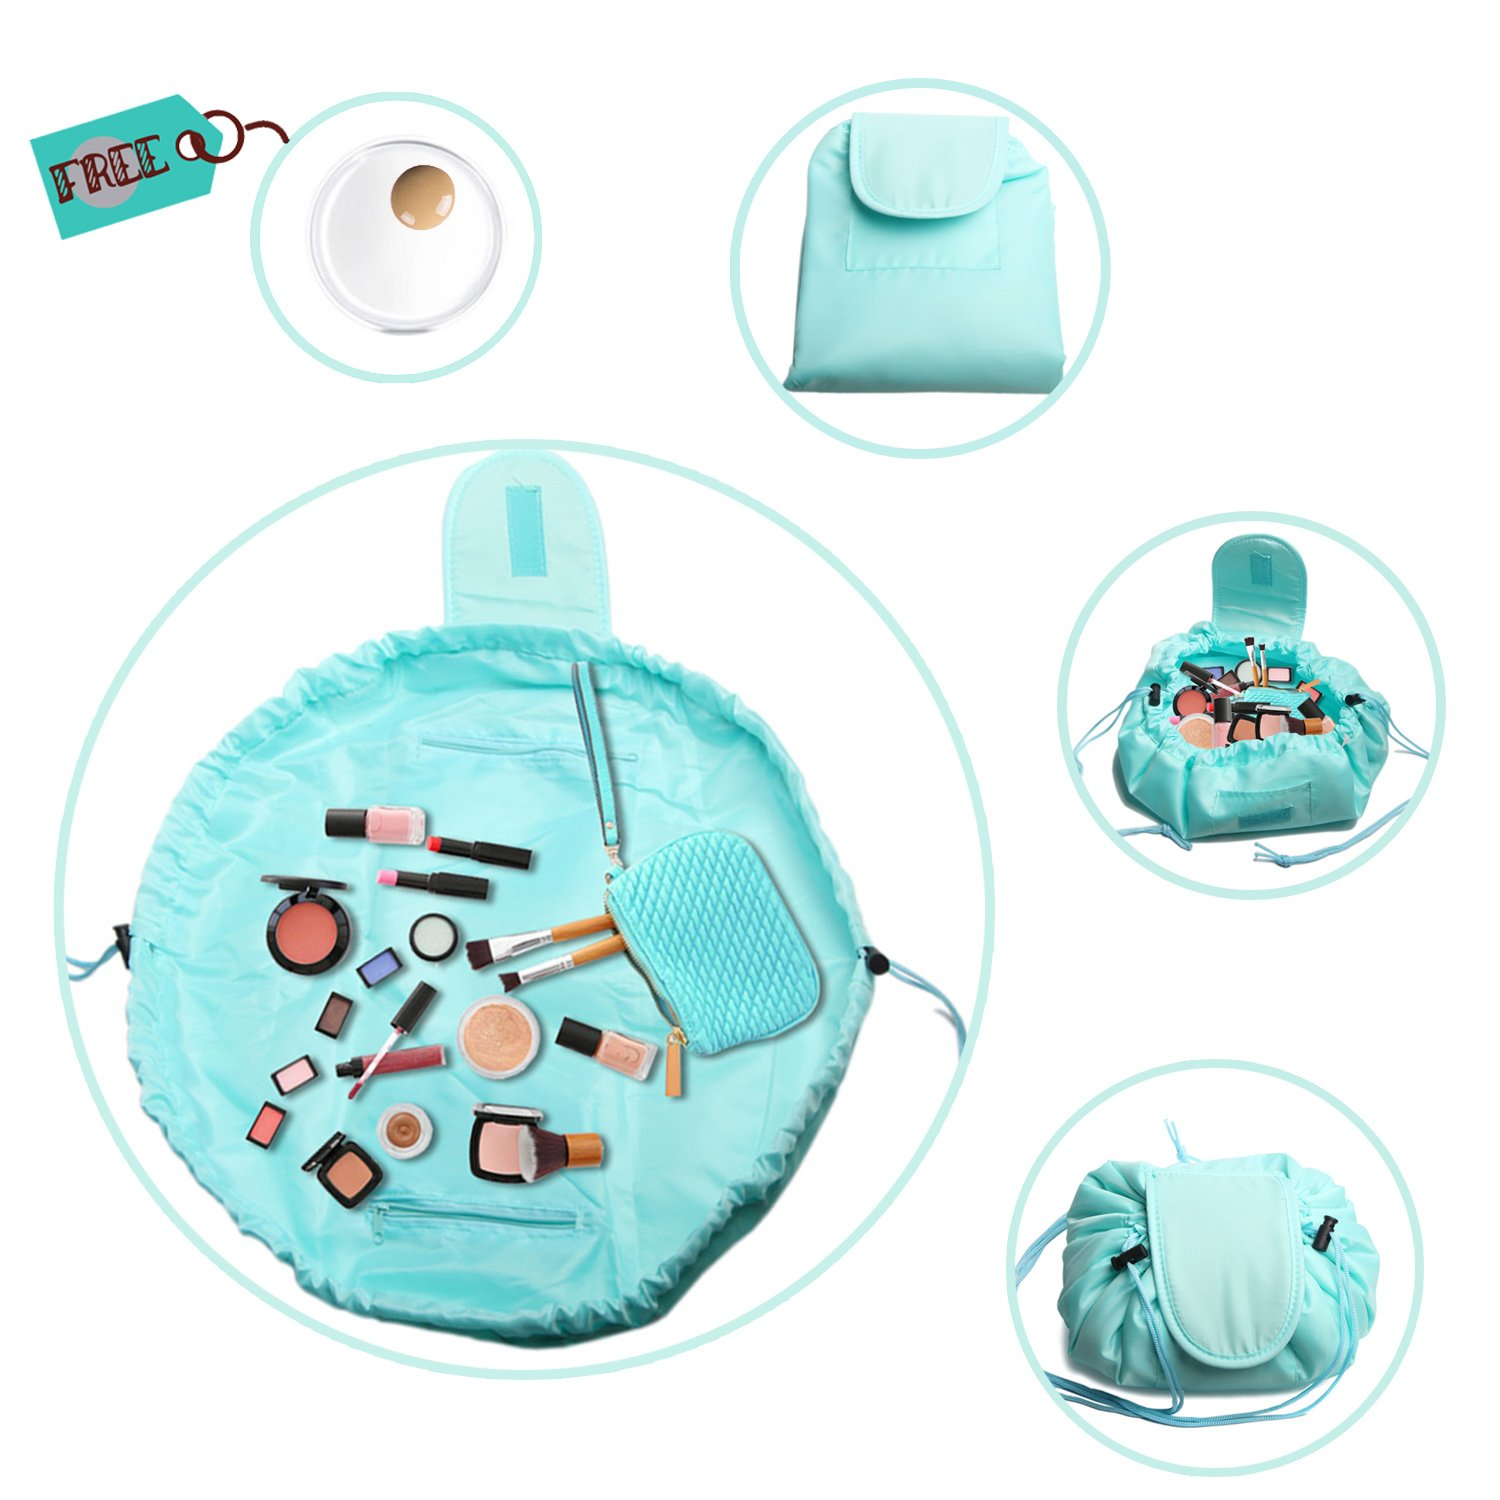 Portable Quick Drawstring Cosmetic Bag Large Capacity Lazy Travel Makeup Pouch Toiletry Bag with Silicone Makeup Blender for Womens Girls